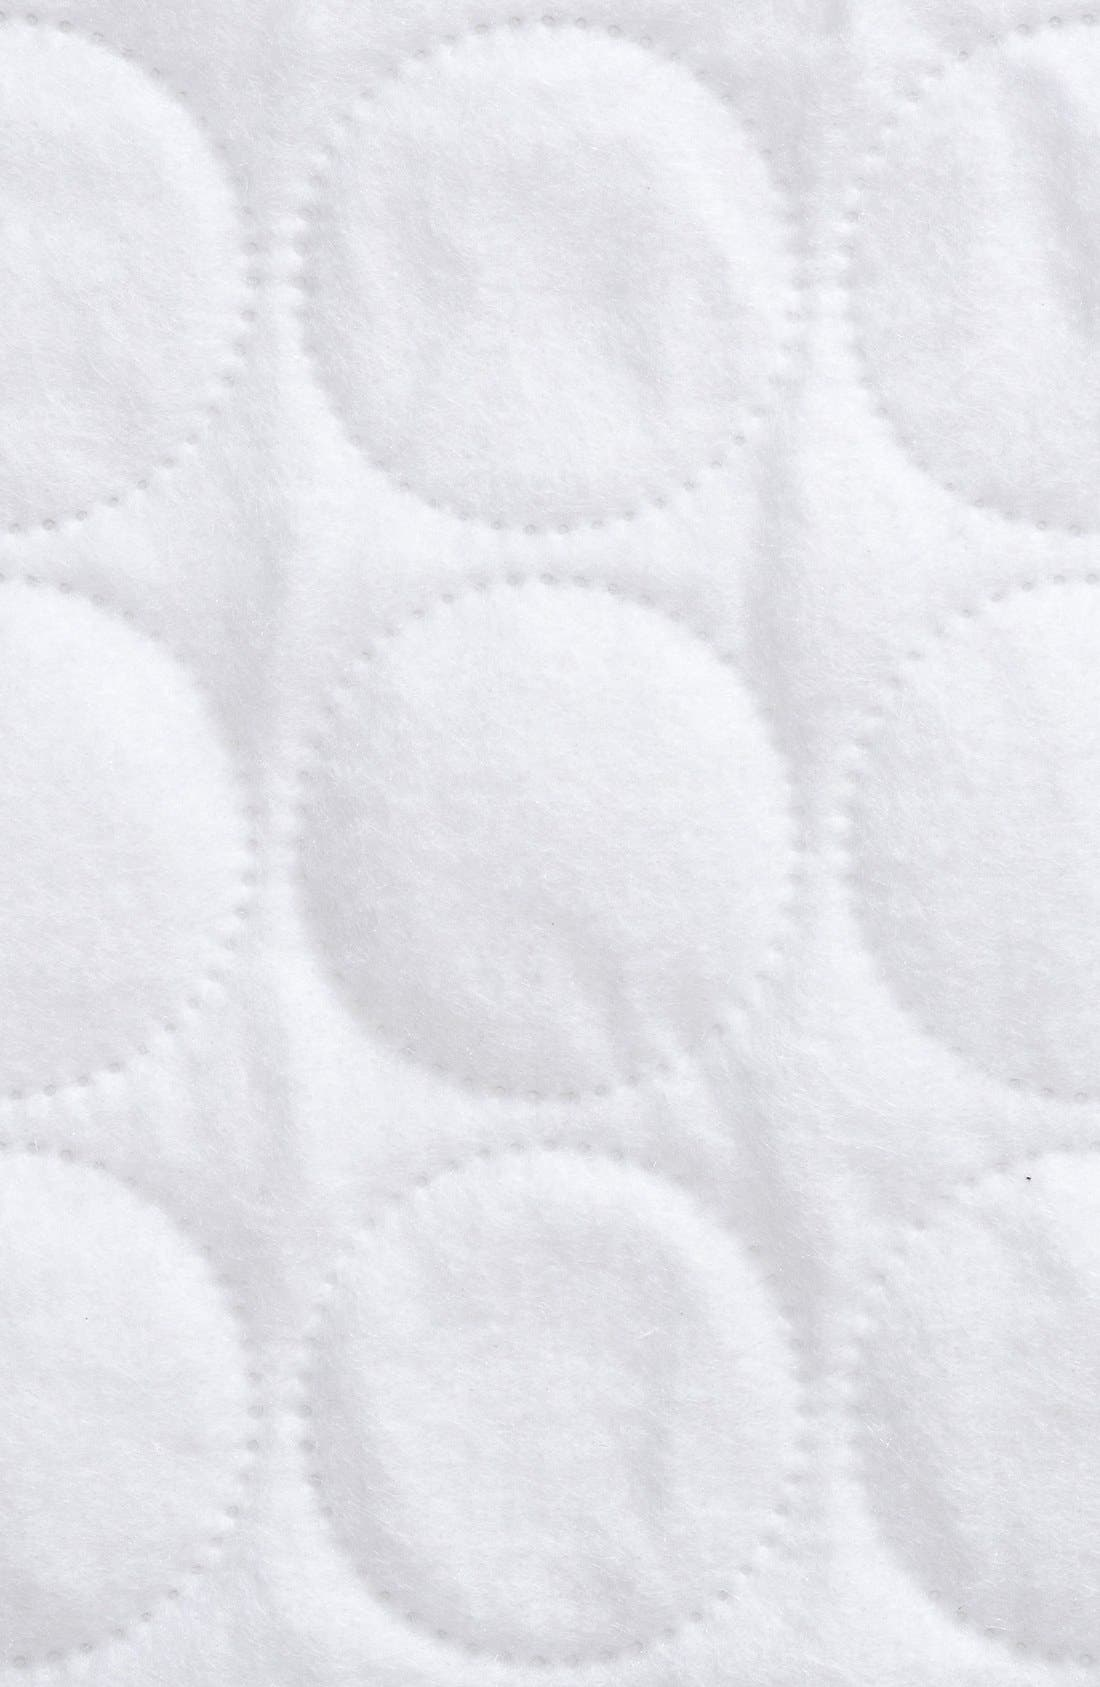 Waterproof Mattress Pad for Halo<sup>®</sup> Bassinest<sup>™</sup> Swivel Sleeper,                             Alternate thumbnail 2, color,                             WHITE